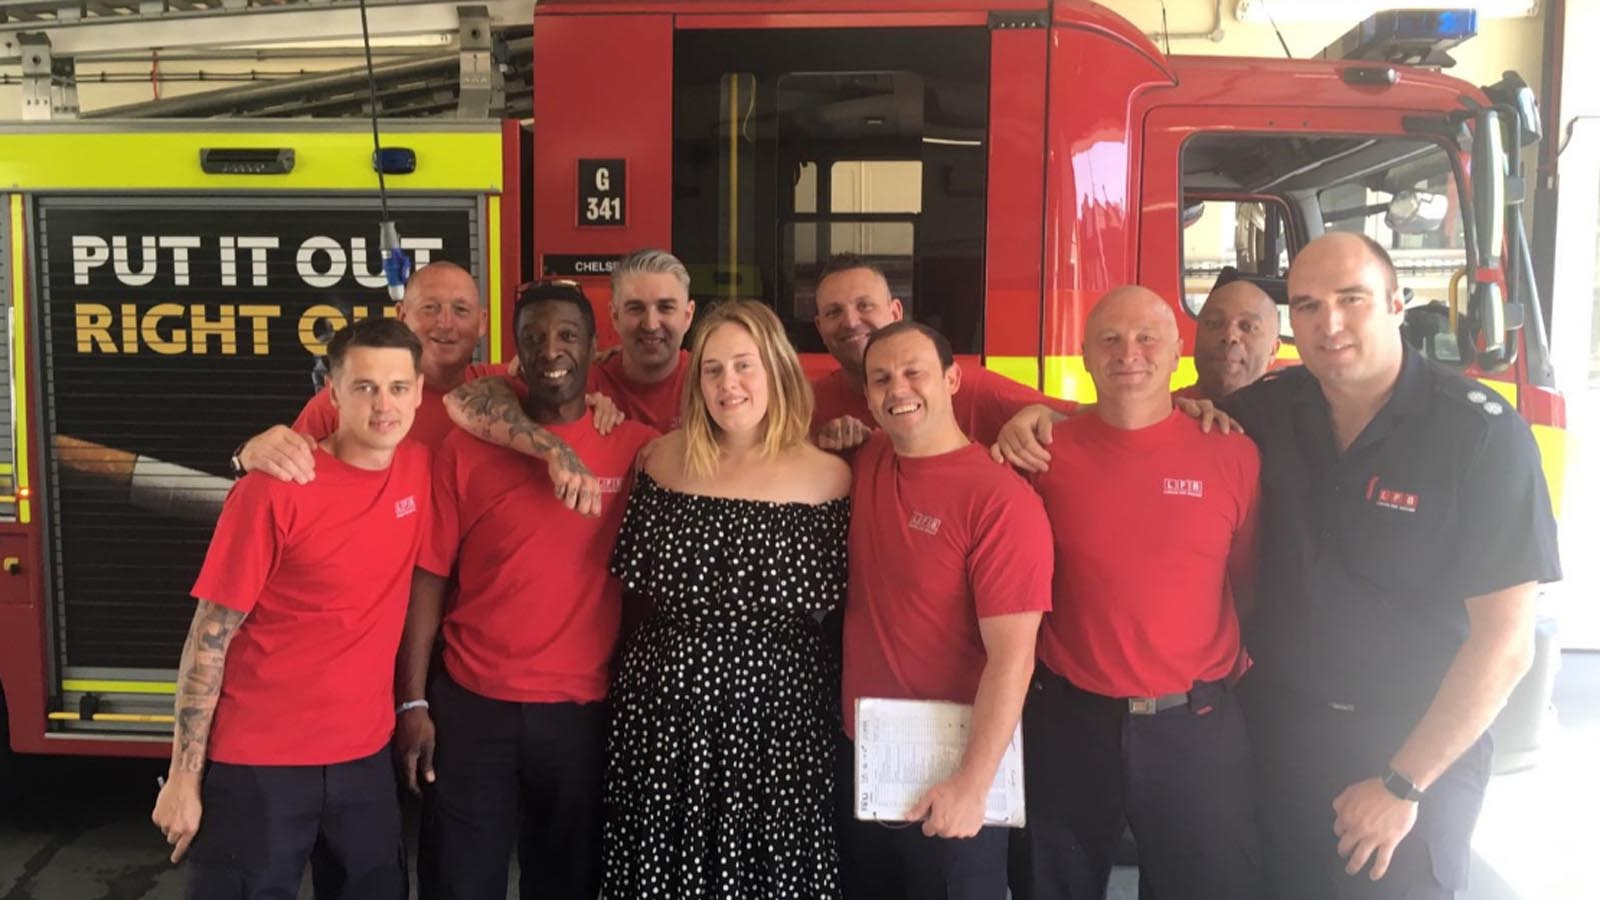 Adele visits Grenfell Tower firefighters for a cup of tea and a cuddle forecasting